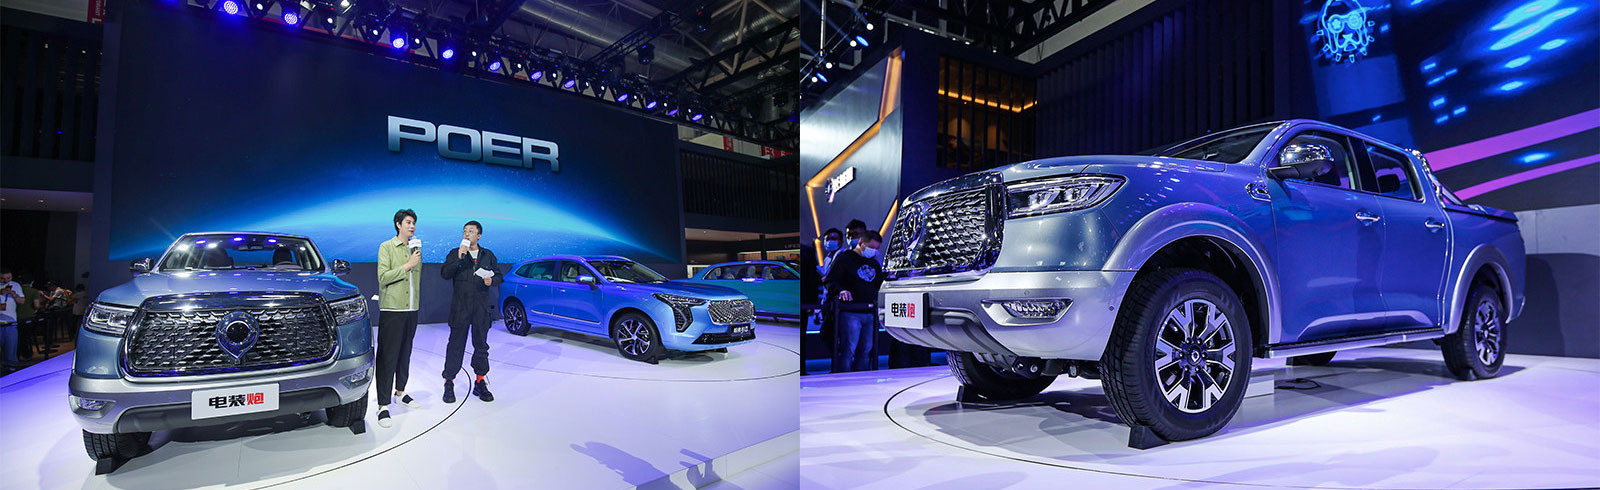 GWM unveiled the POER EV pickup truck at the 2020 Beijing Auto Show